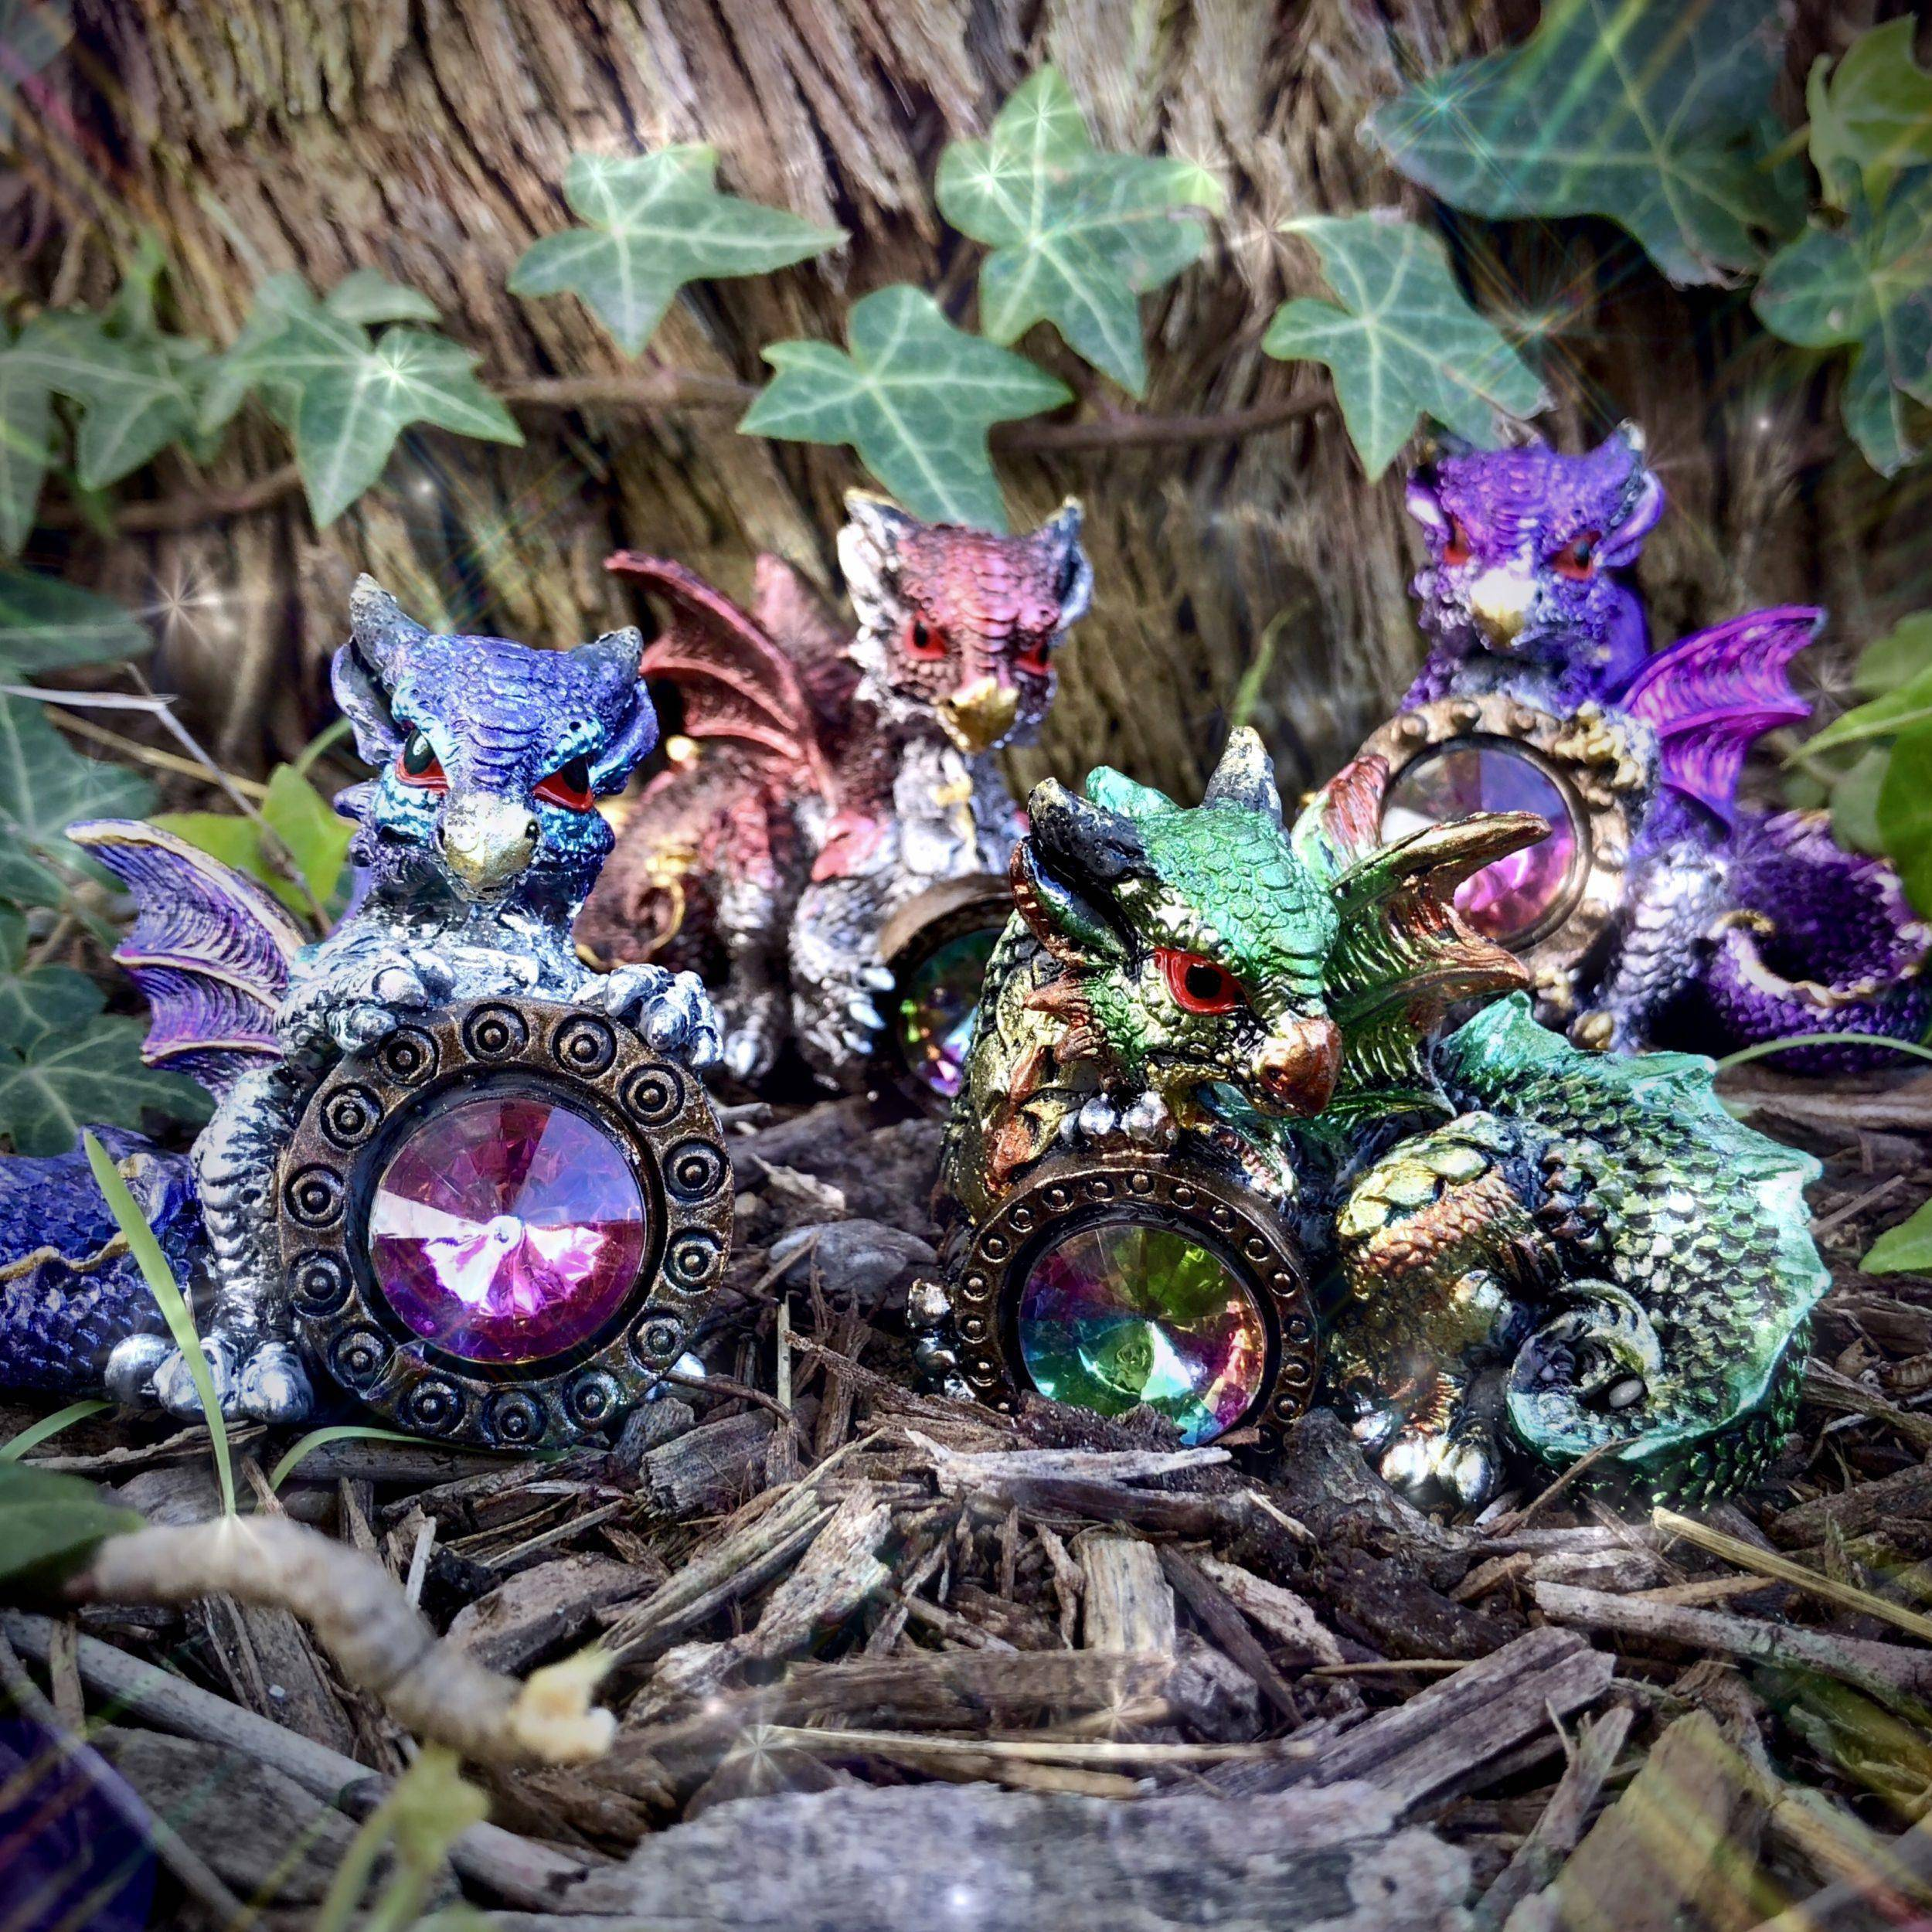 Magical_Dragon_Figurines_1of4_9_2